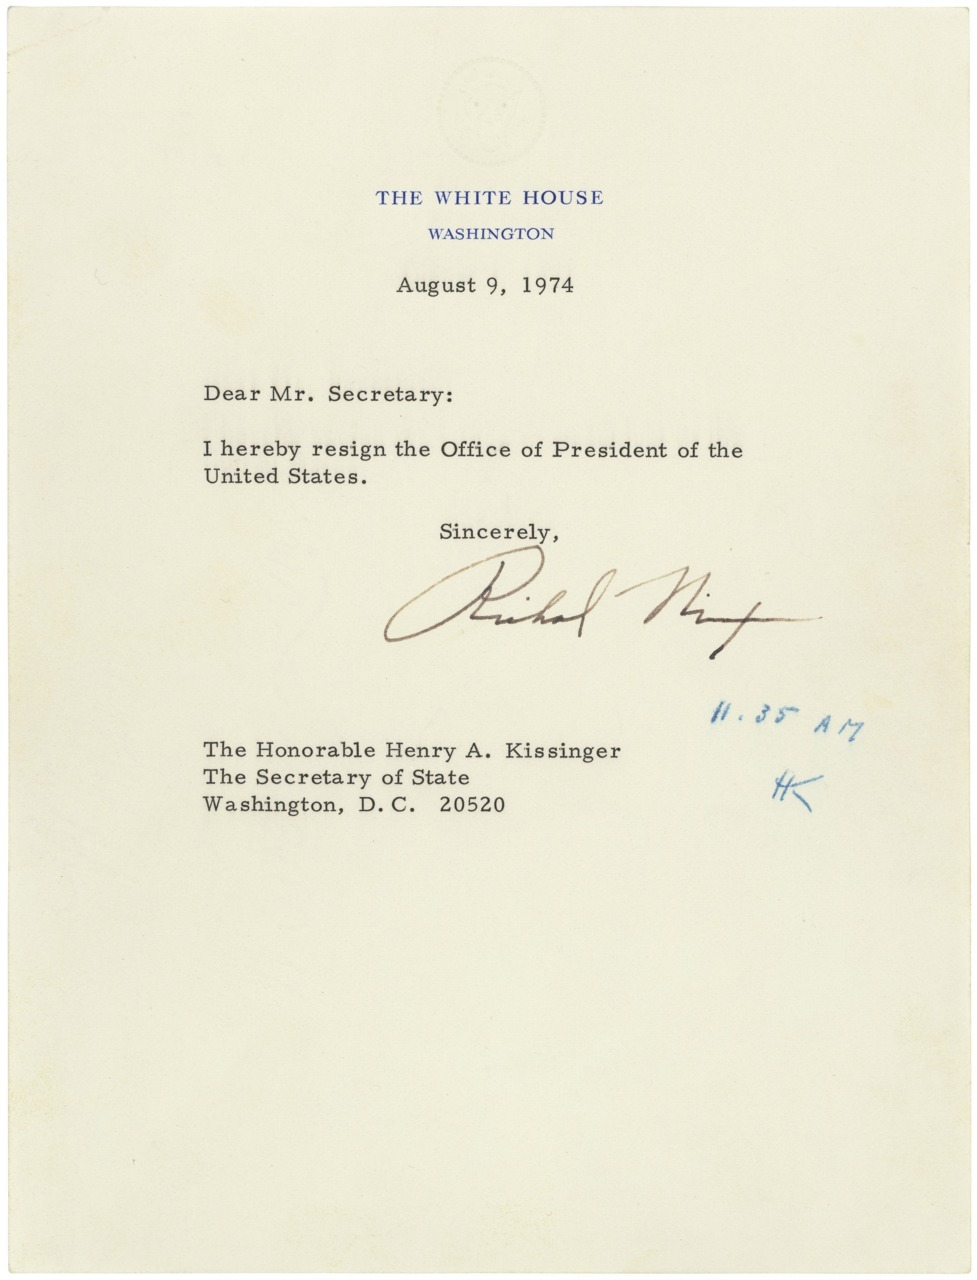 Richard M. Nixon's Resignation Letter, 08/09/1974 Following the revelations stemming from the investigation of the Watergate break-in, President Richard M. Nixon resigned the Presidency in this letter dated August 9, 1974. The President's resignation letter is addressed to the Secretary of State, in keeping with a law passed by Congress in 1792. The letter became effective when Secretary of State Henry Kissinger initialed it at 11:35 a.m.